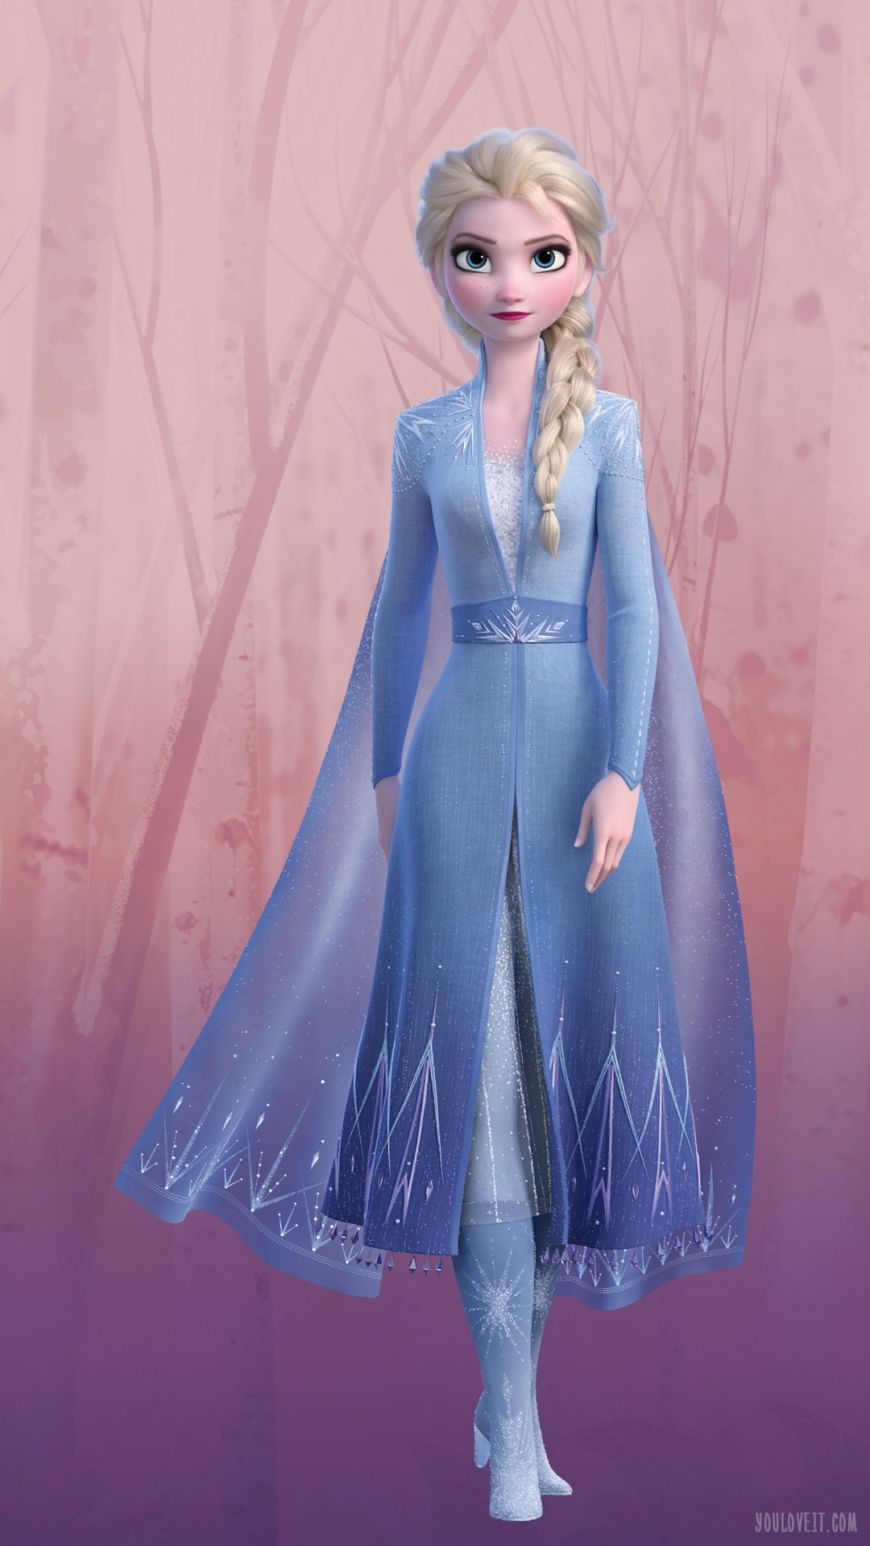 Frozen 2 Elsa Phone Wallpaper Disney Princess Elsa Disney Frozen Elsa Disney Princess Frozen